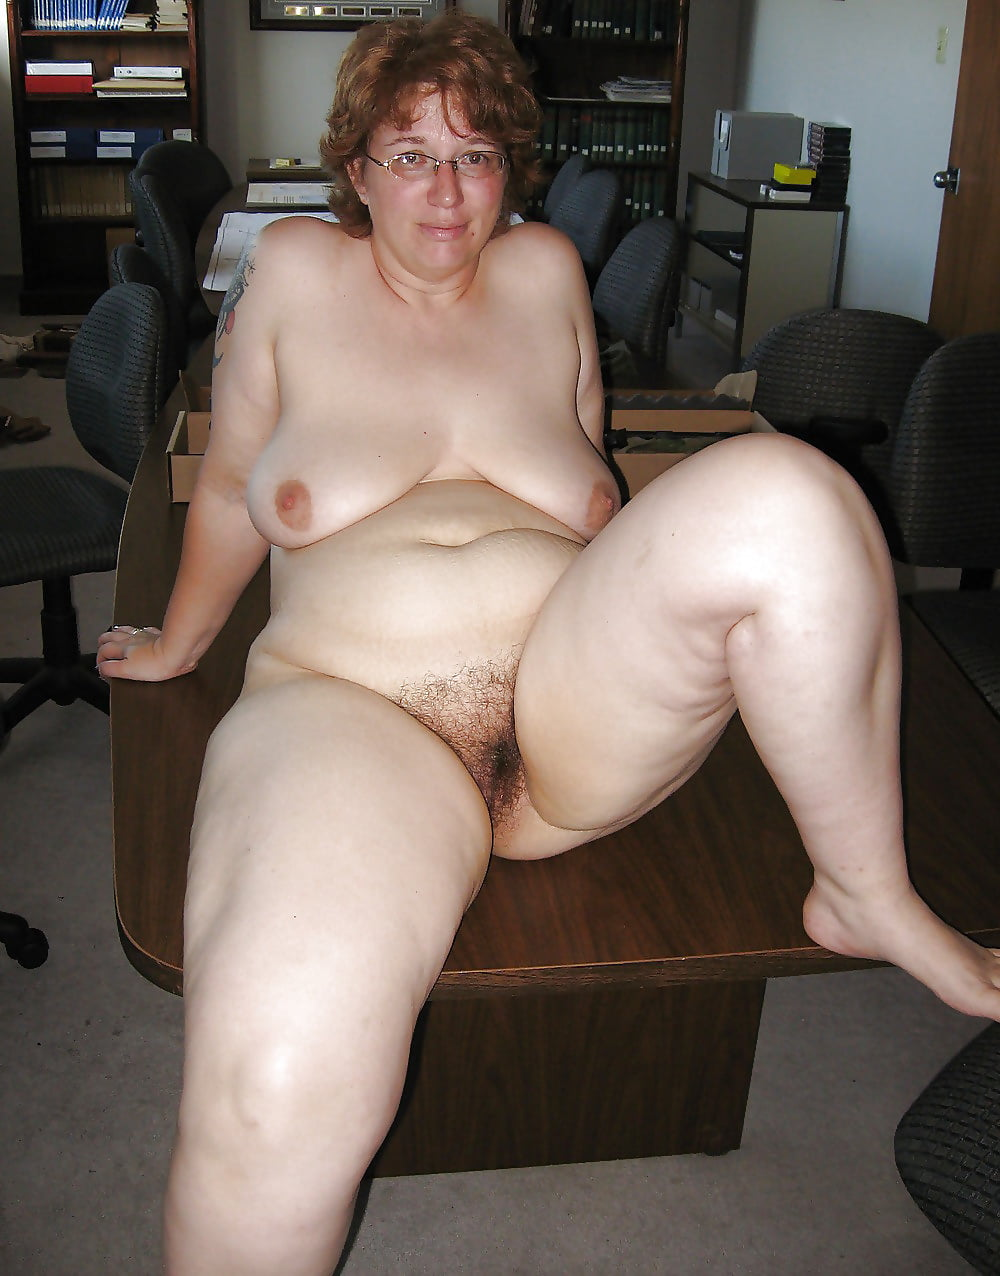 real-older-chubby-moms-wife-pics-online